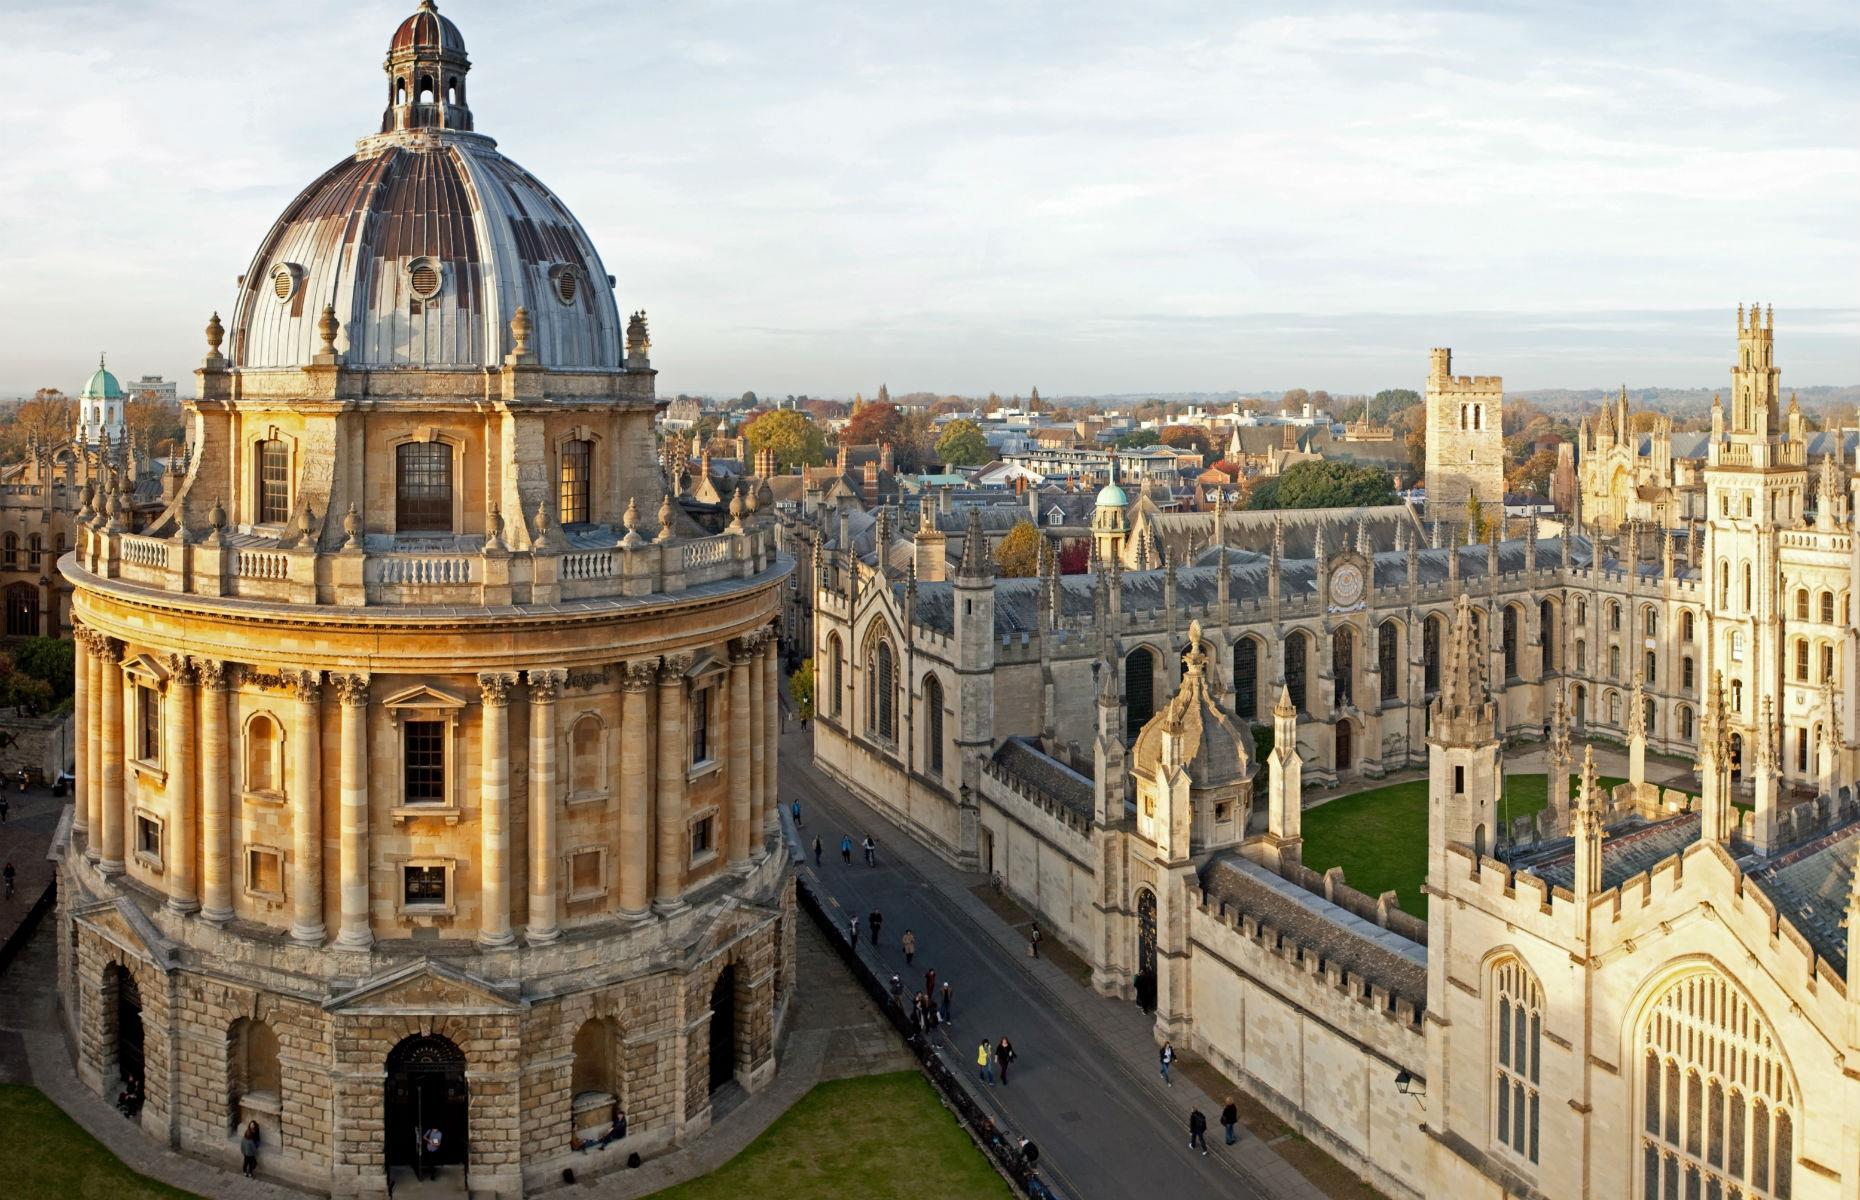 Oxford, Radcliffe Camera